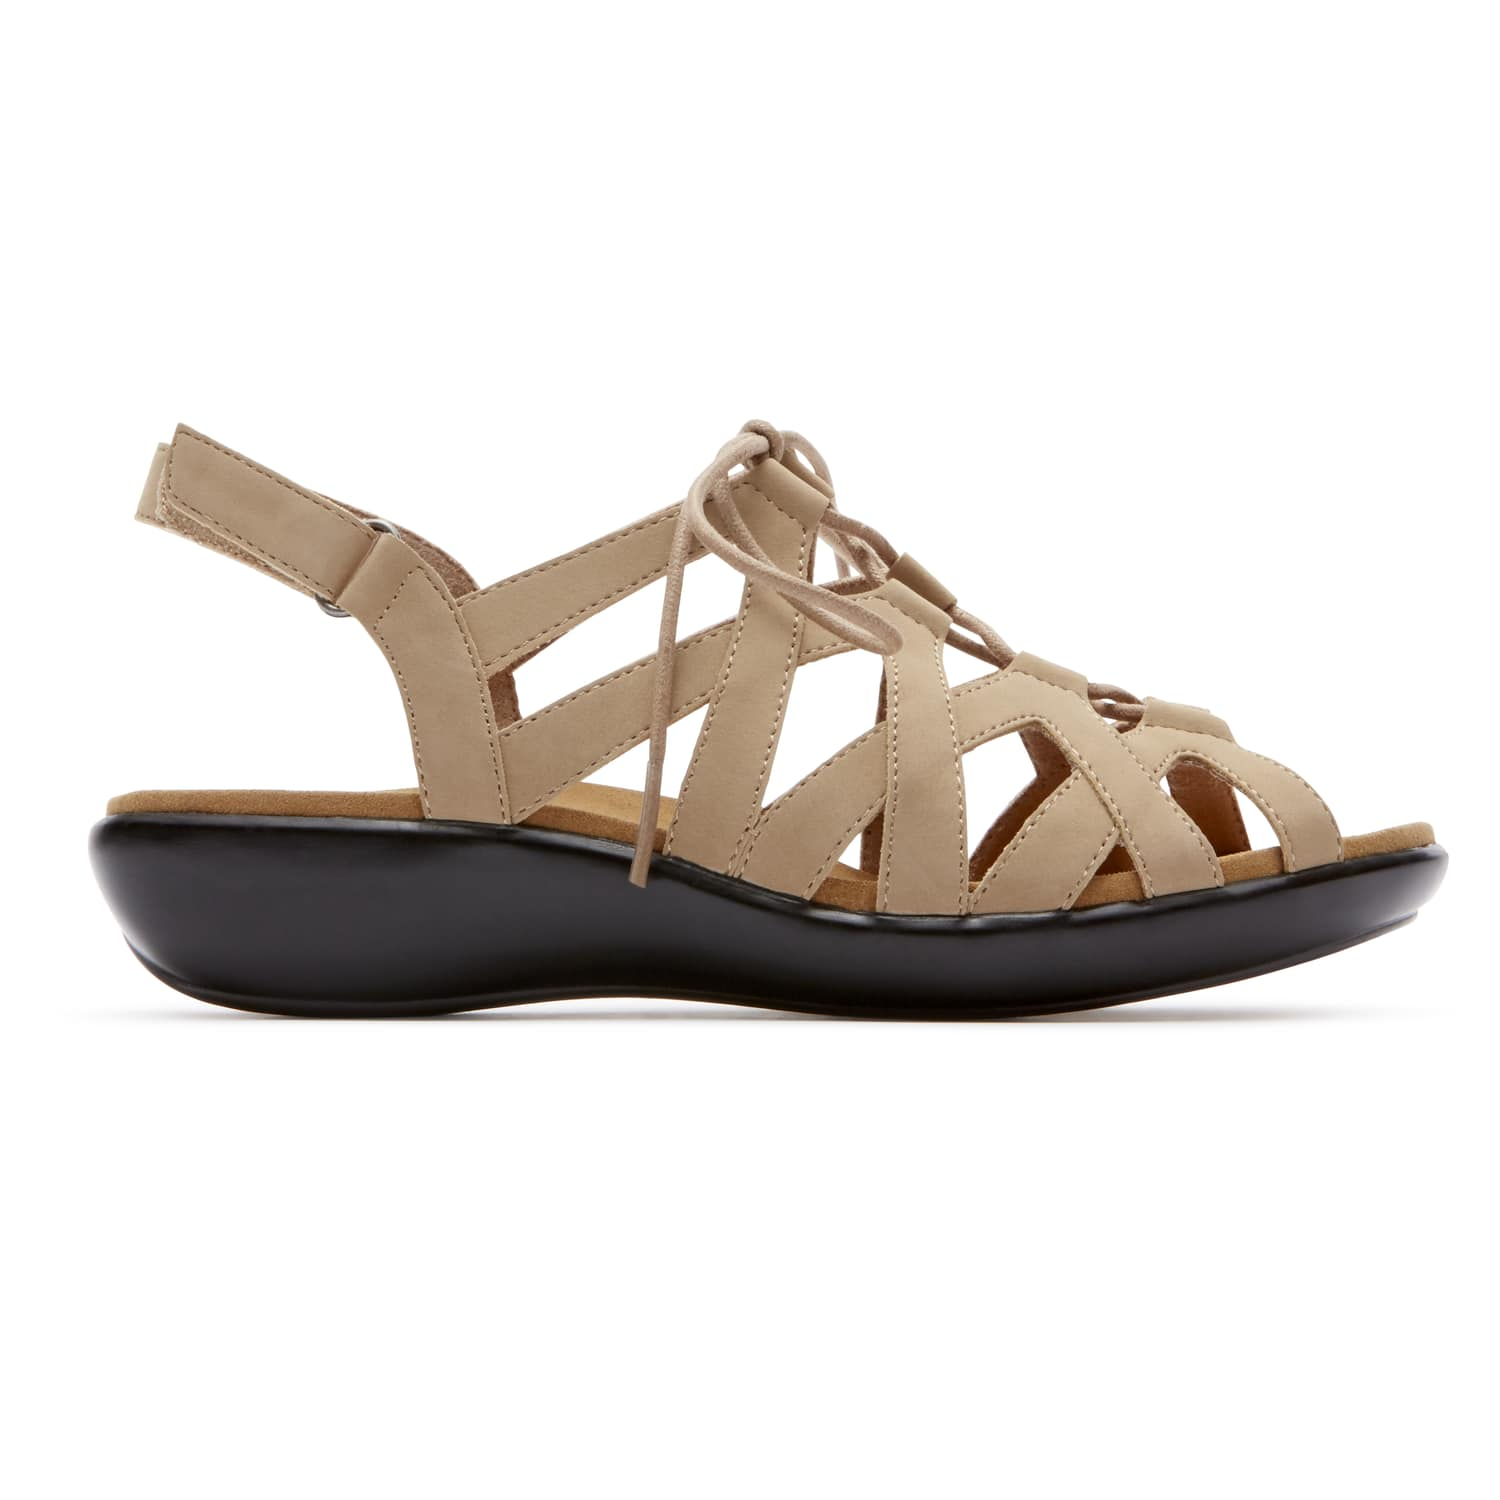 Rockport Women's Rozelle Gille Tie Sandal $22.50, WALK360 Washable Laceup $30, Weekend Casuals Lanea Quarter Strap $30, More + free shipping